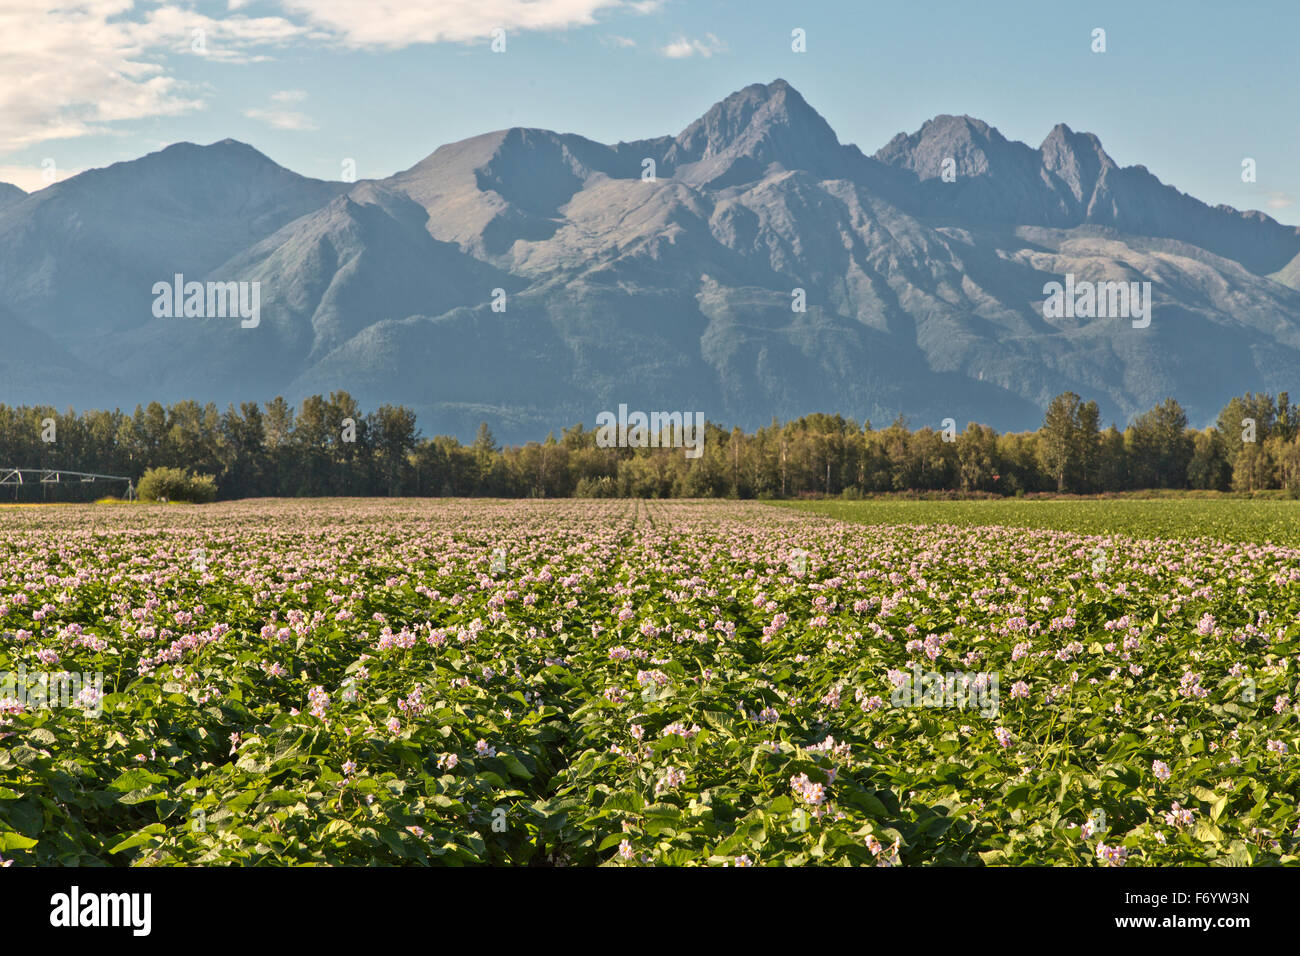 Flowering potato field, Chugach Mountains in the distance. - Stock Image